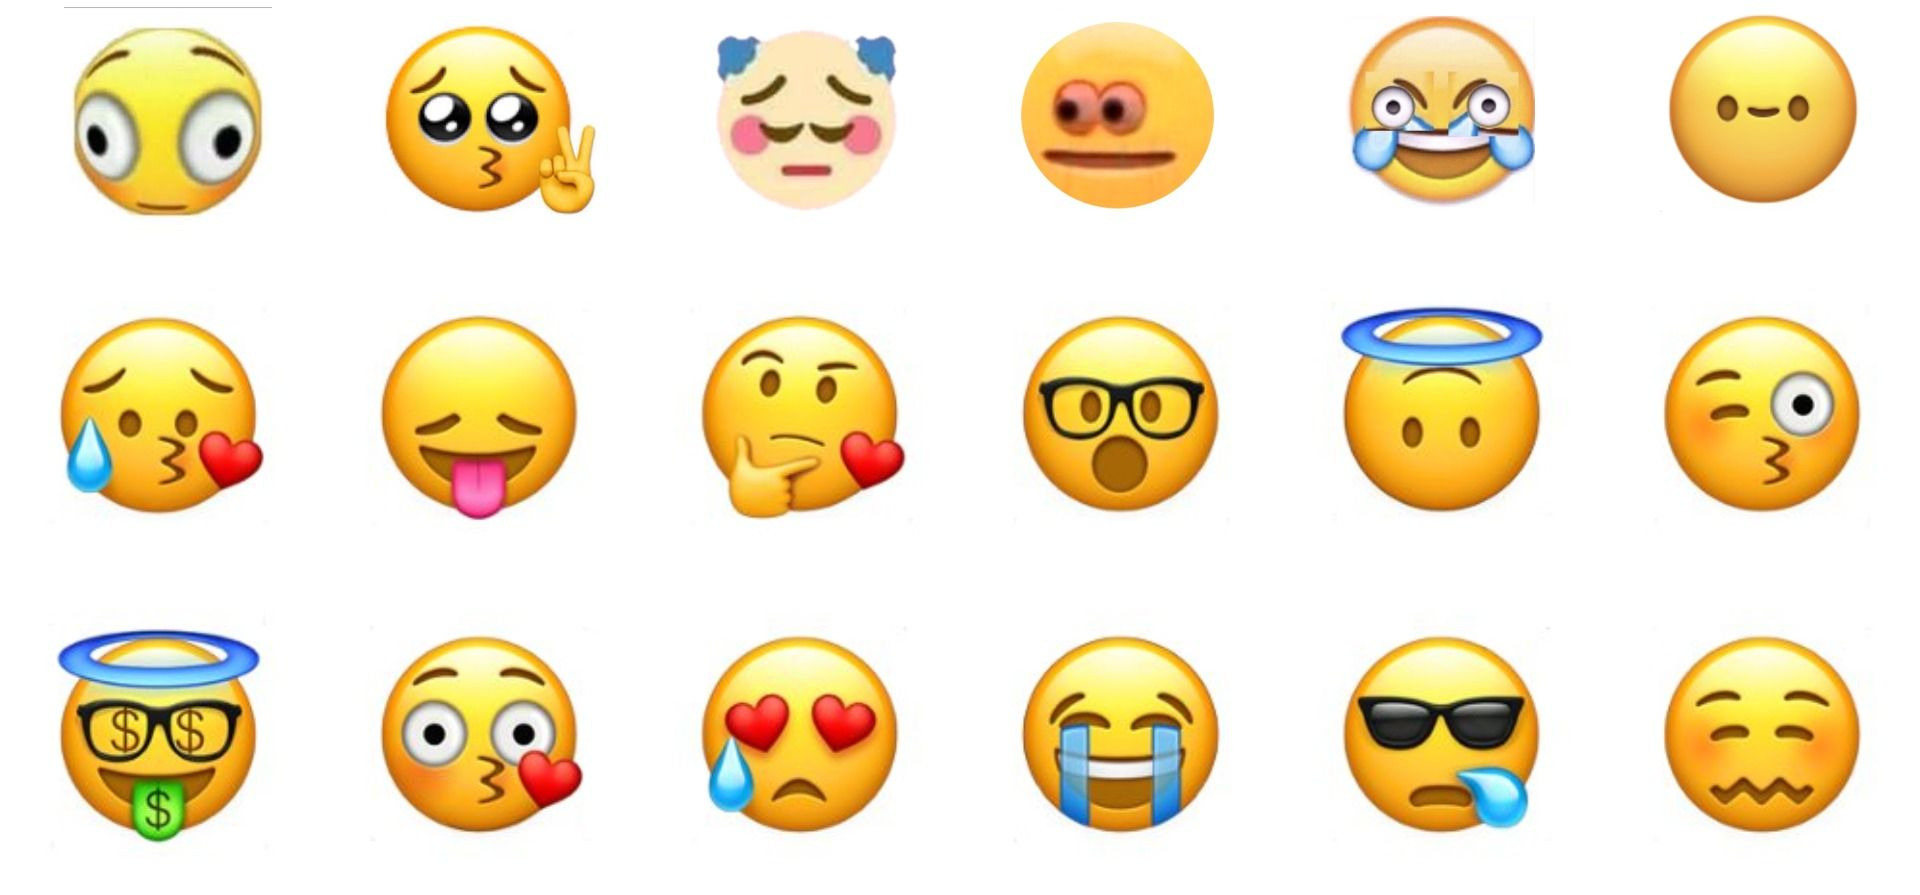 A Thinking Emoji Emoticon Smiley Face Character Looking Interested